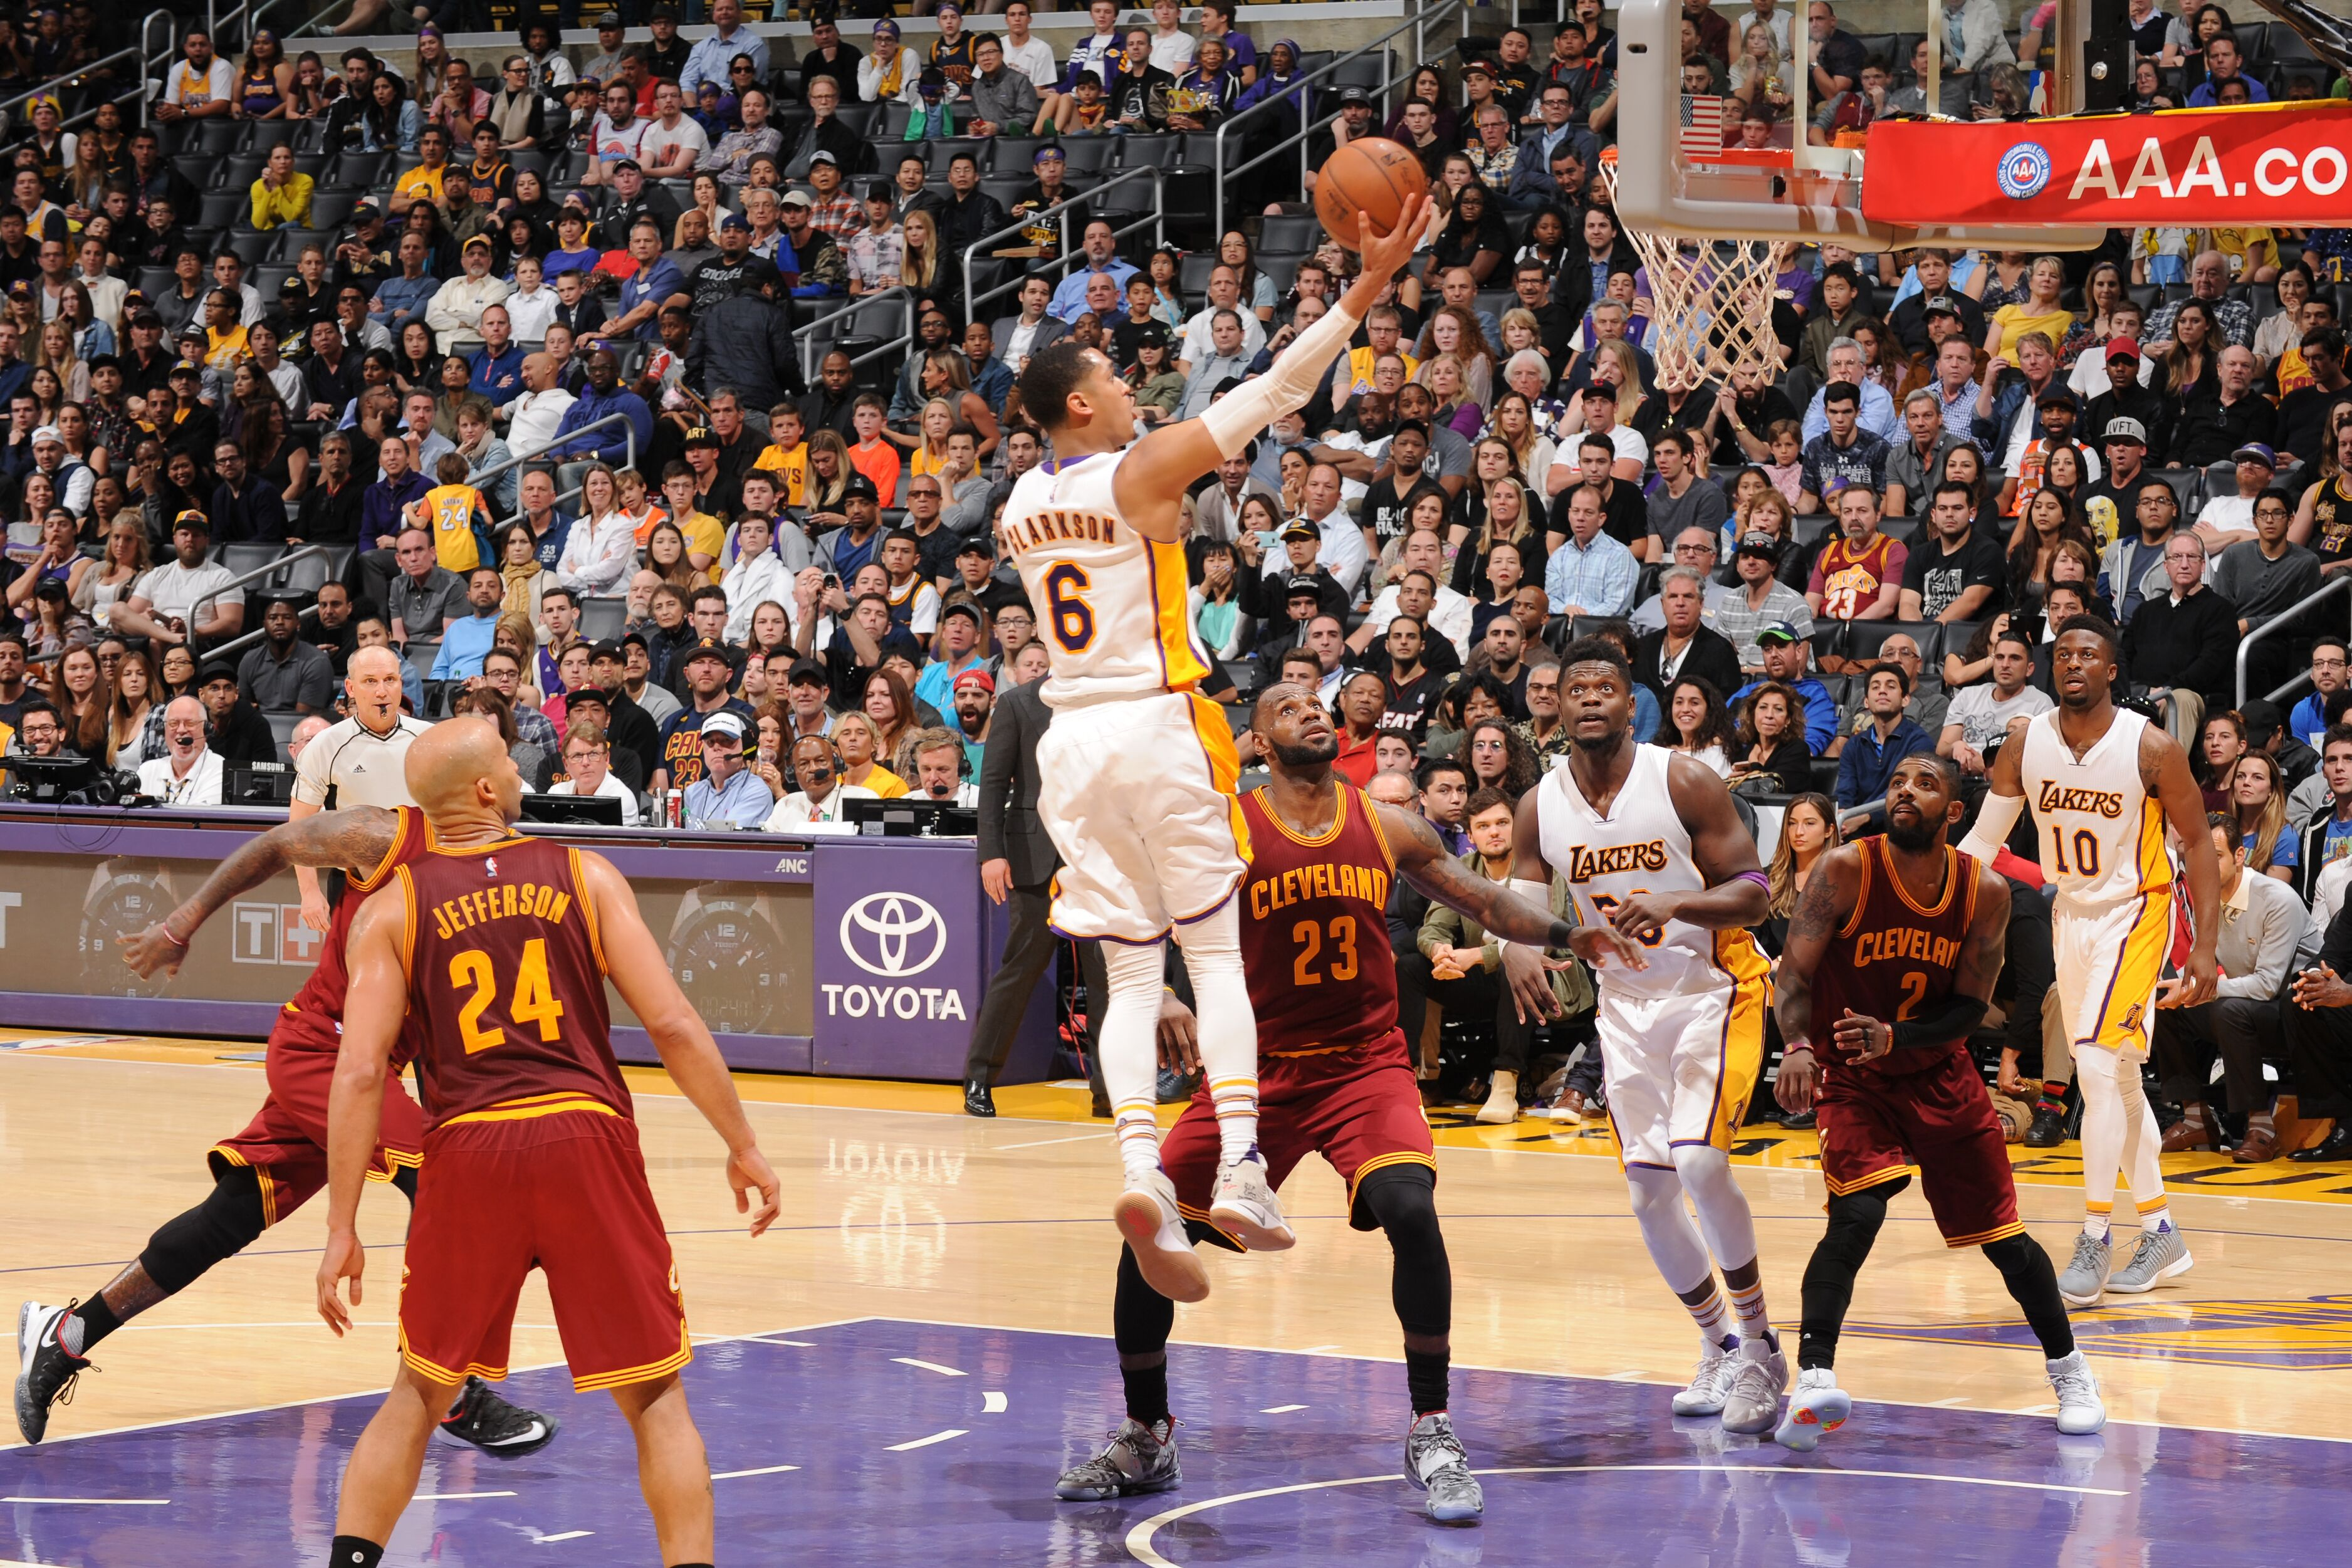 lakers-cavaliers - photo #50